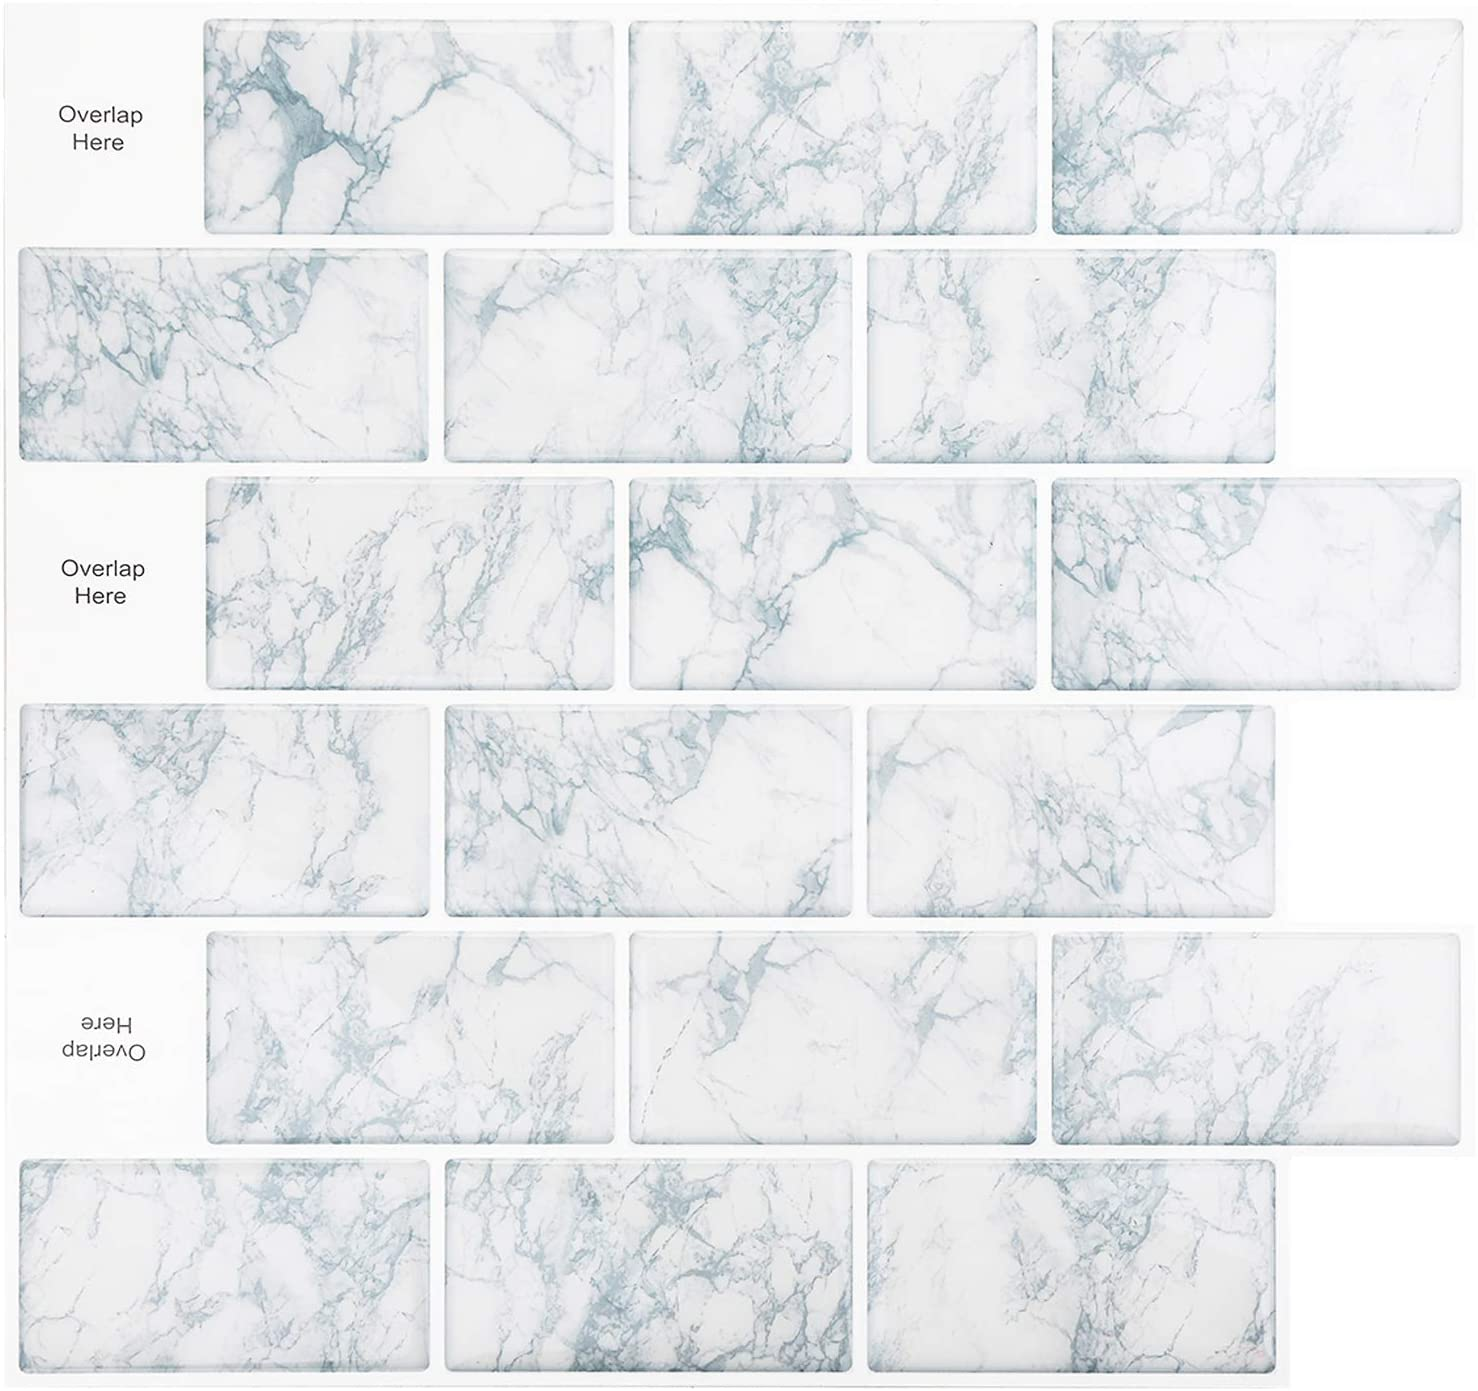 HomeyMosaic Peel and Stick Tile for Kitchen Backsplash,Stick on Tiles for Kitchen,12x12 inches Snowflake Marble White Subway Tile with White Grout(10-Sheets)